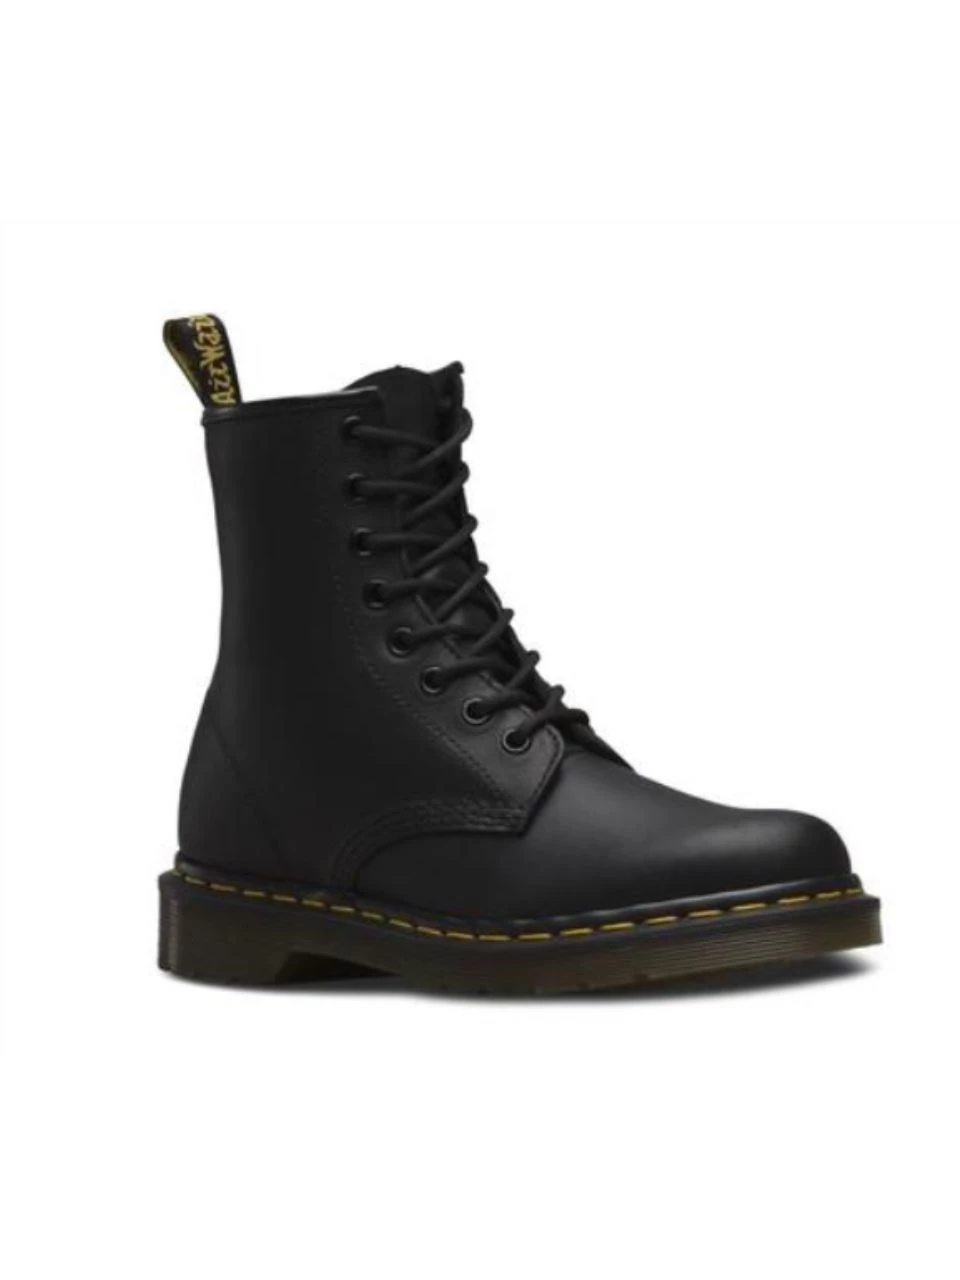 DR MARTENS 1460 GREASY BLACK